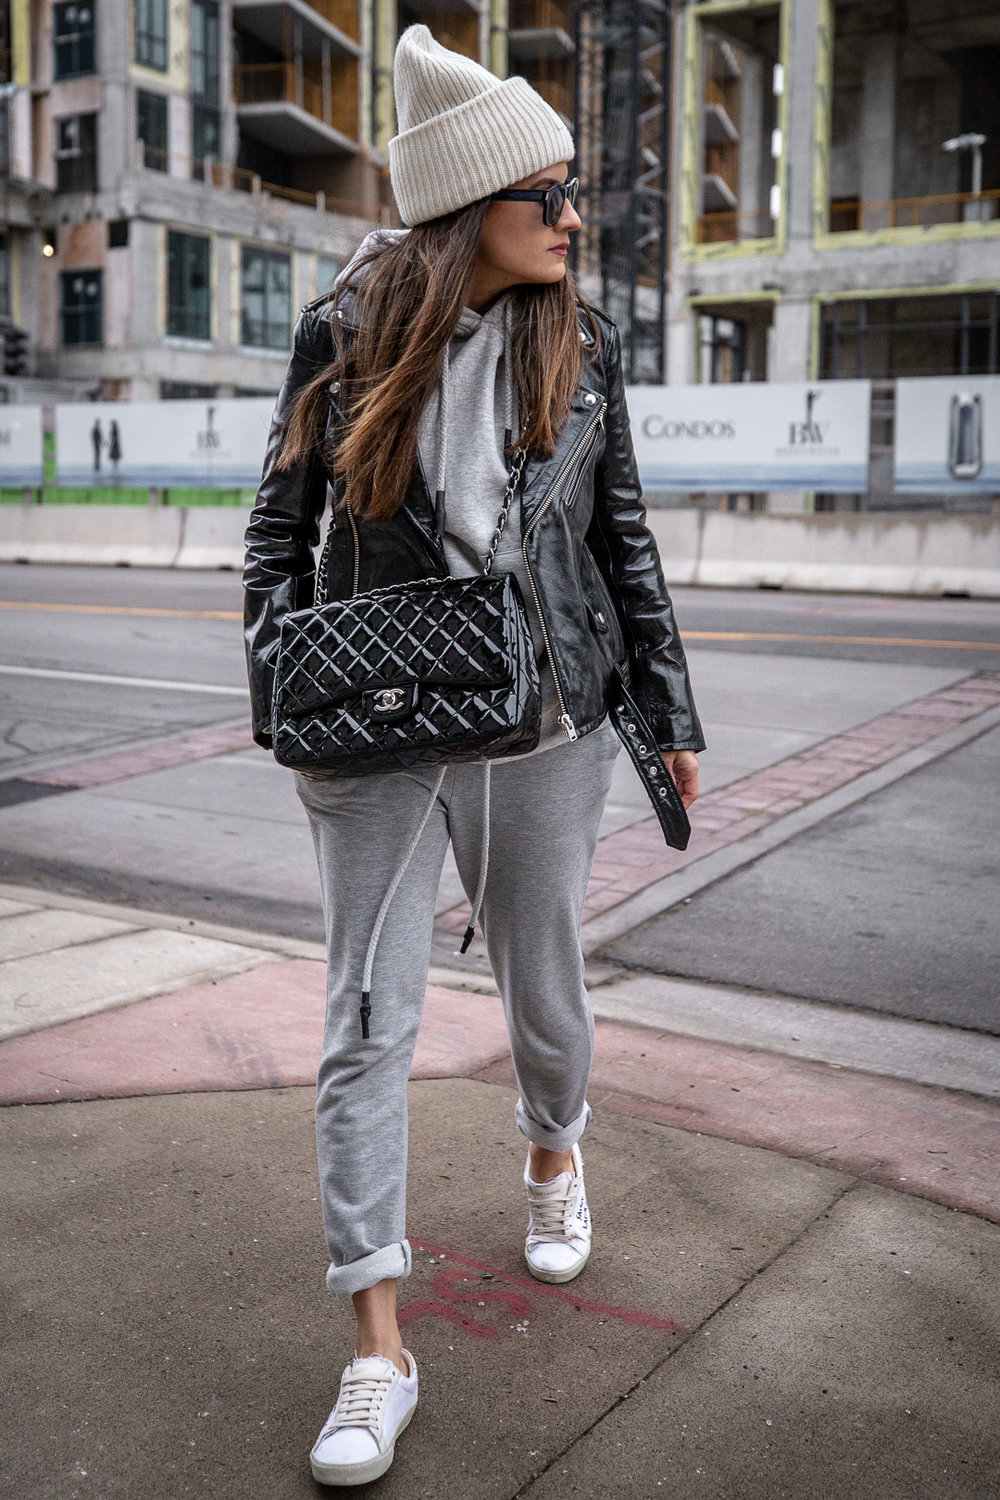 Nathalie Martin - IRO Paris patent leather moto jacket, Zara sweatsuit, grey hoodie and sweatpants, Saint Laurent white canvas logo sneakers, CHANEL patent leather jumbo flap quilted bag, ACNE studios Pansy face beanie hat - woahstyle.com_5527.jpg